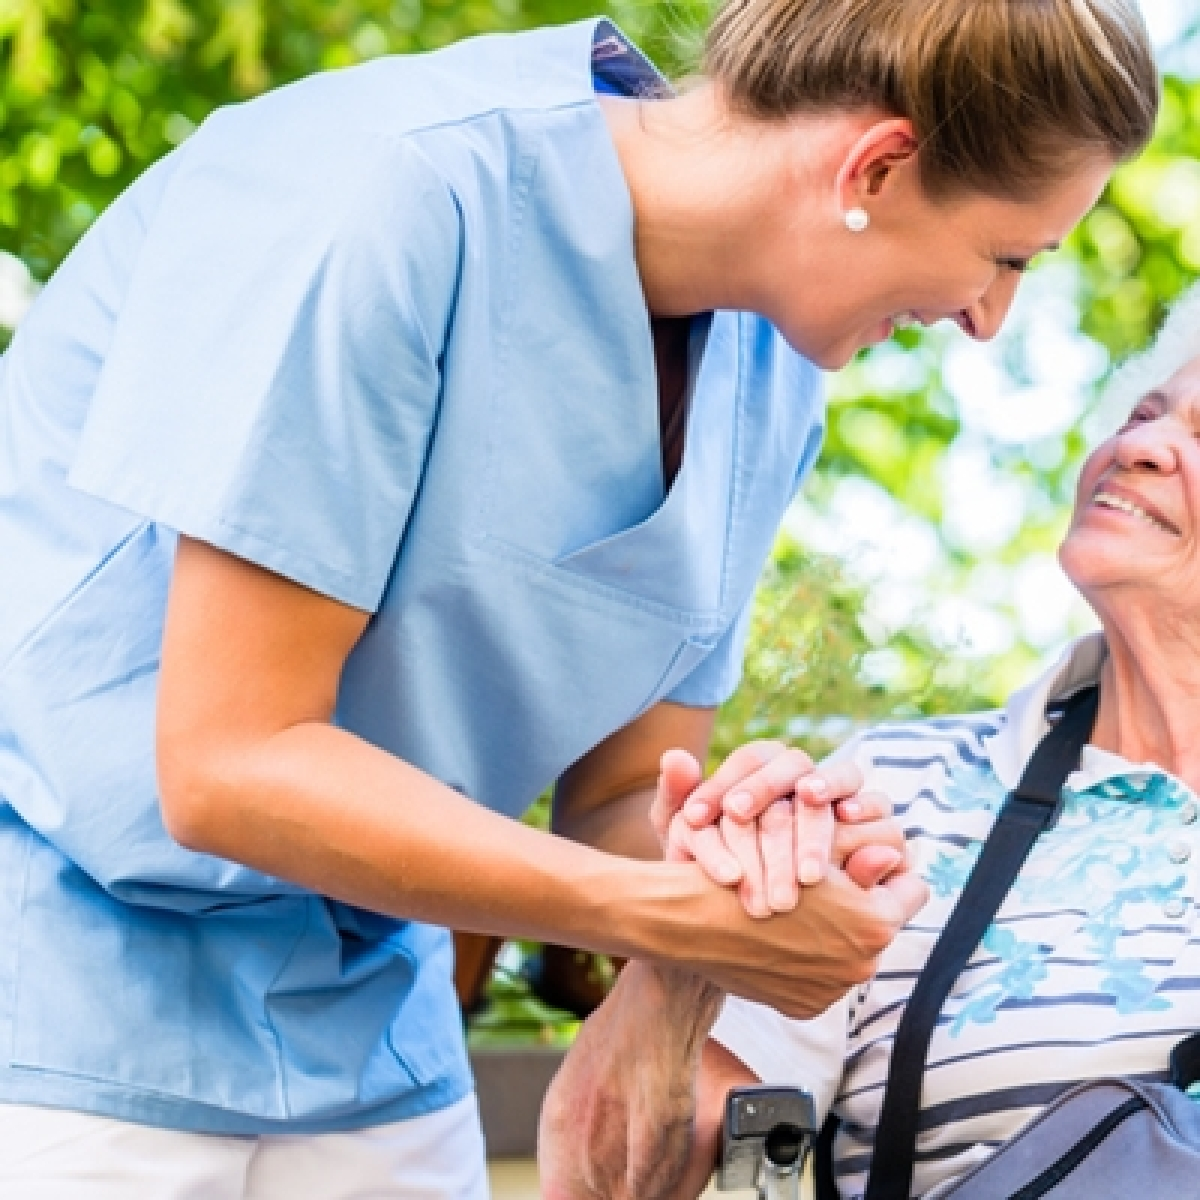 Looking after the elderly: The challenges for a caregiver